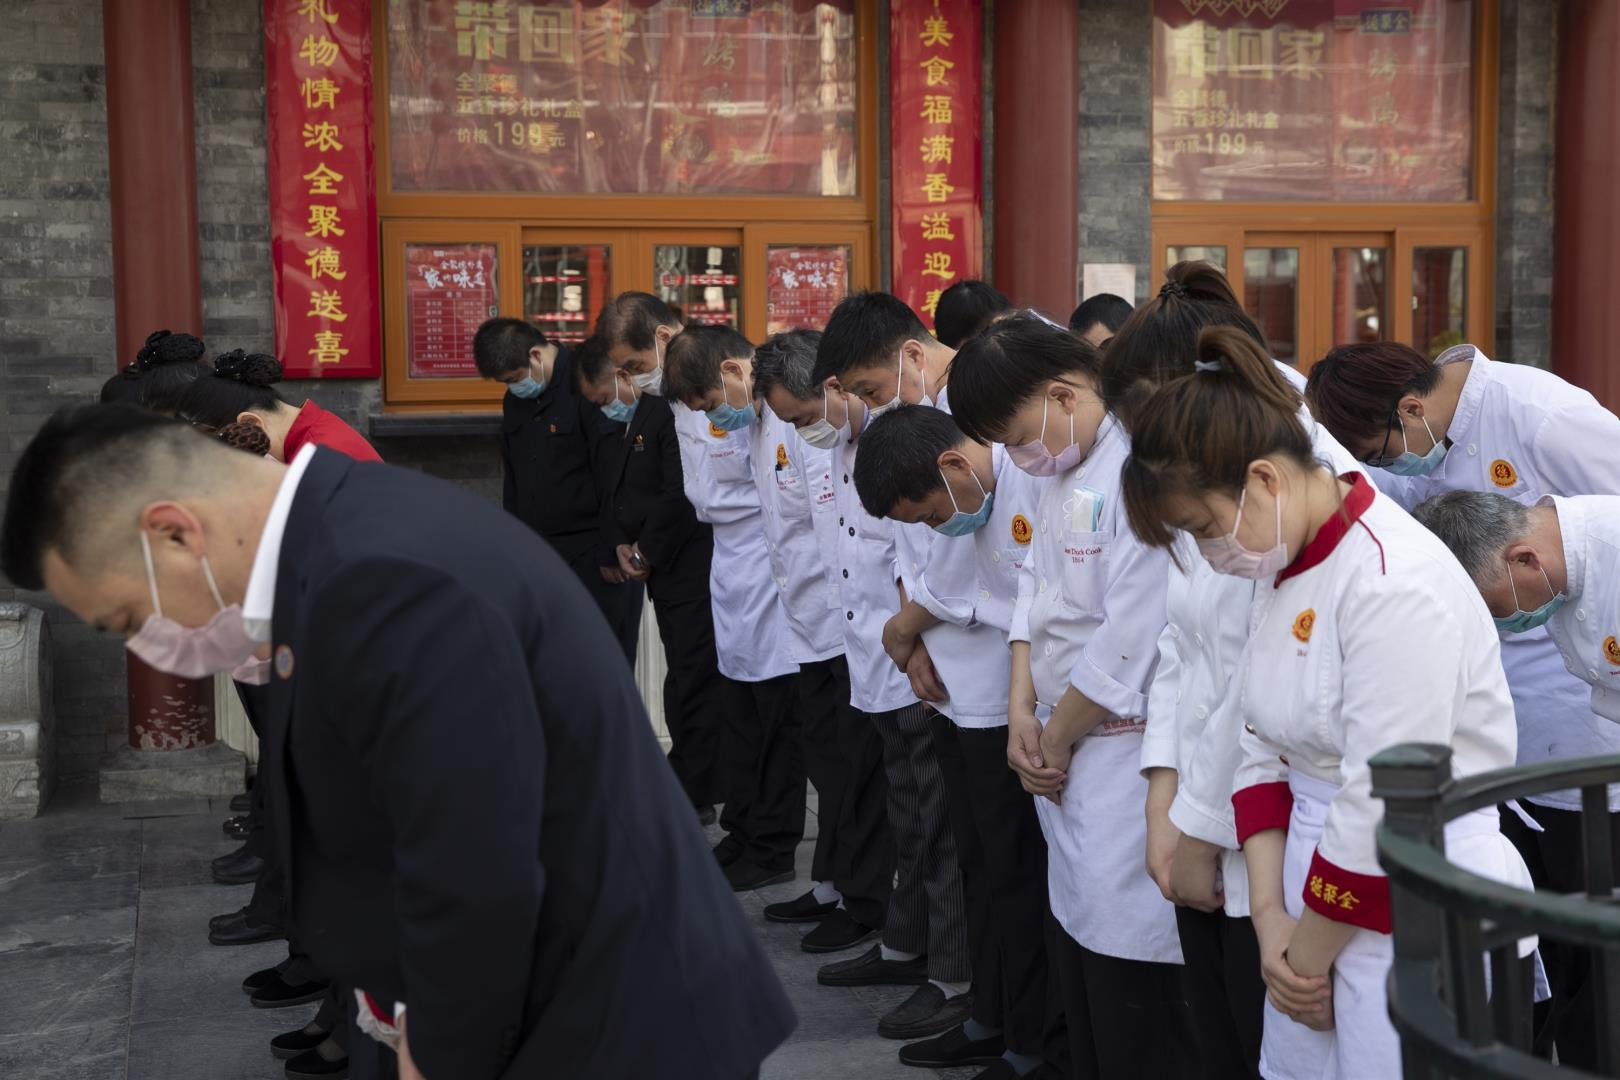 State mourning event for victims of COVID-19, in China